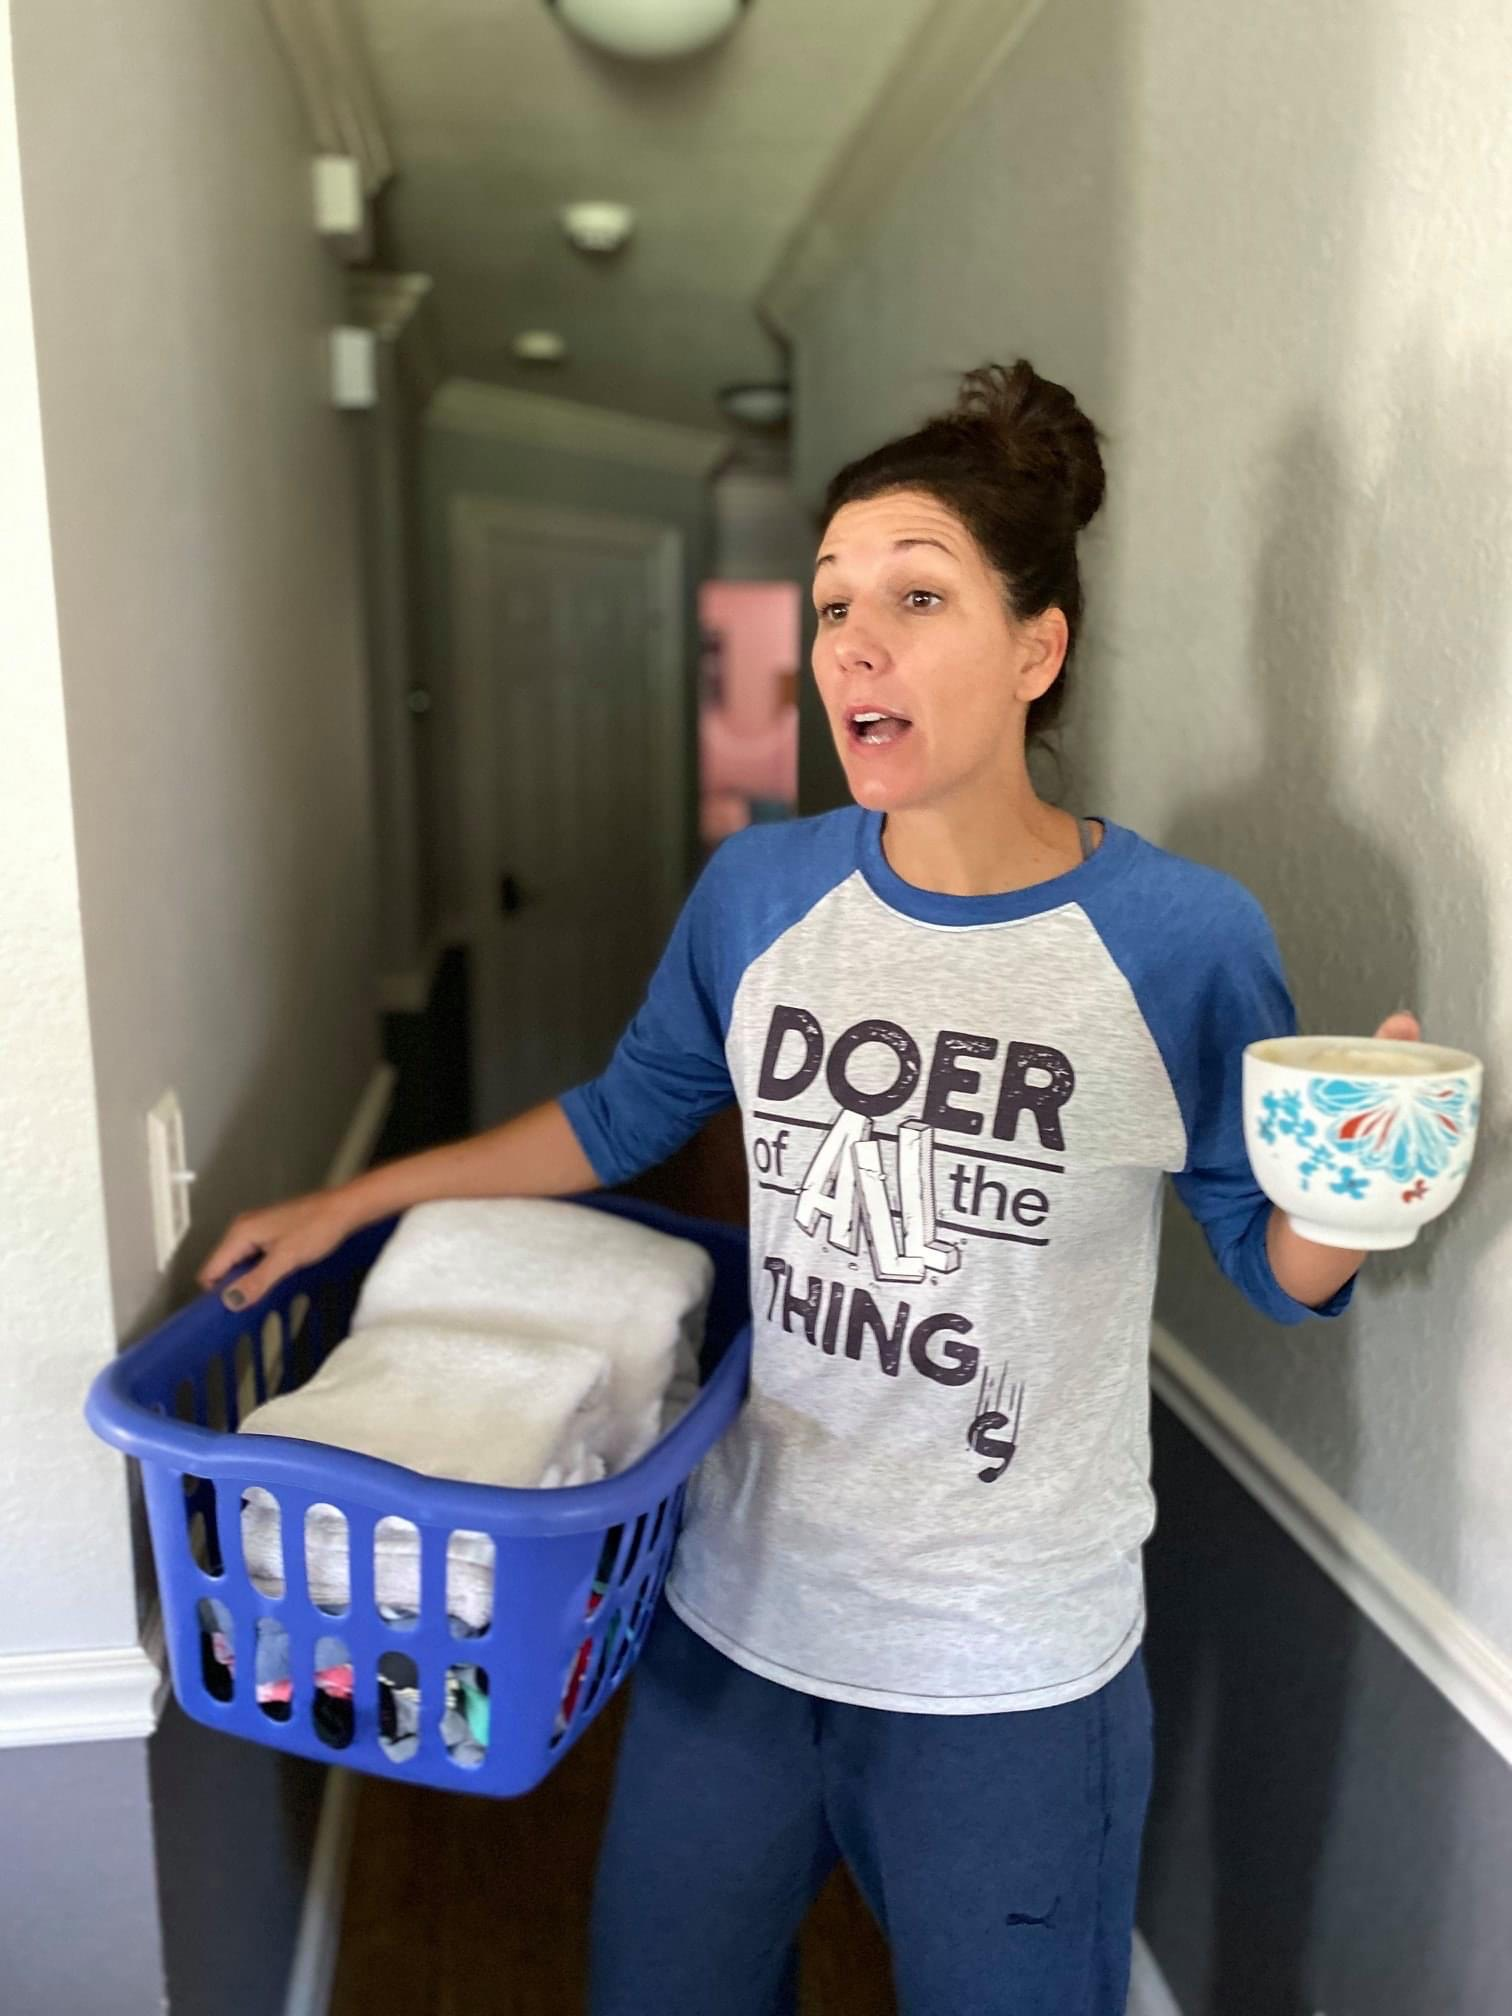 Meredith Masony doing laundry wearing her 'Doer of all the things' merch with Bonfire